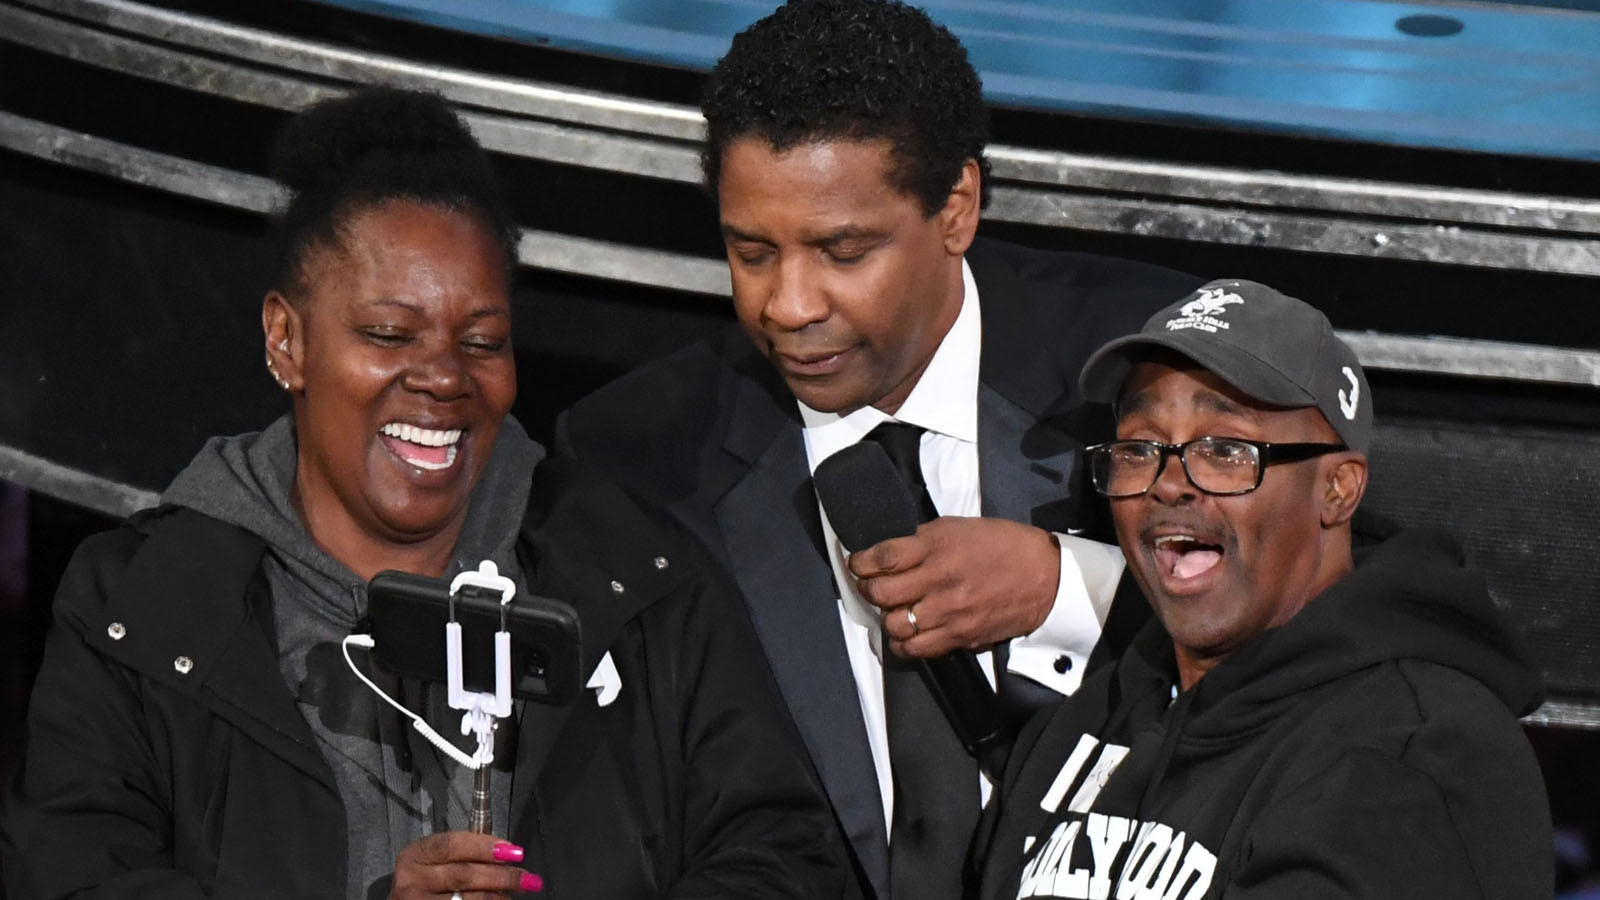 Vickie Vines, Denzel Washington and Gary Alan Coe at the Oscars on Sunday. (Mark Ralston / AFP / Getty Images)